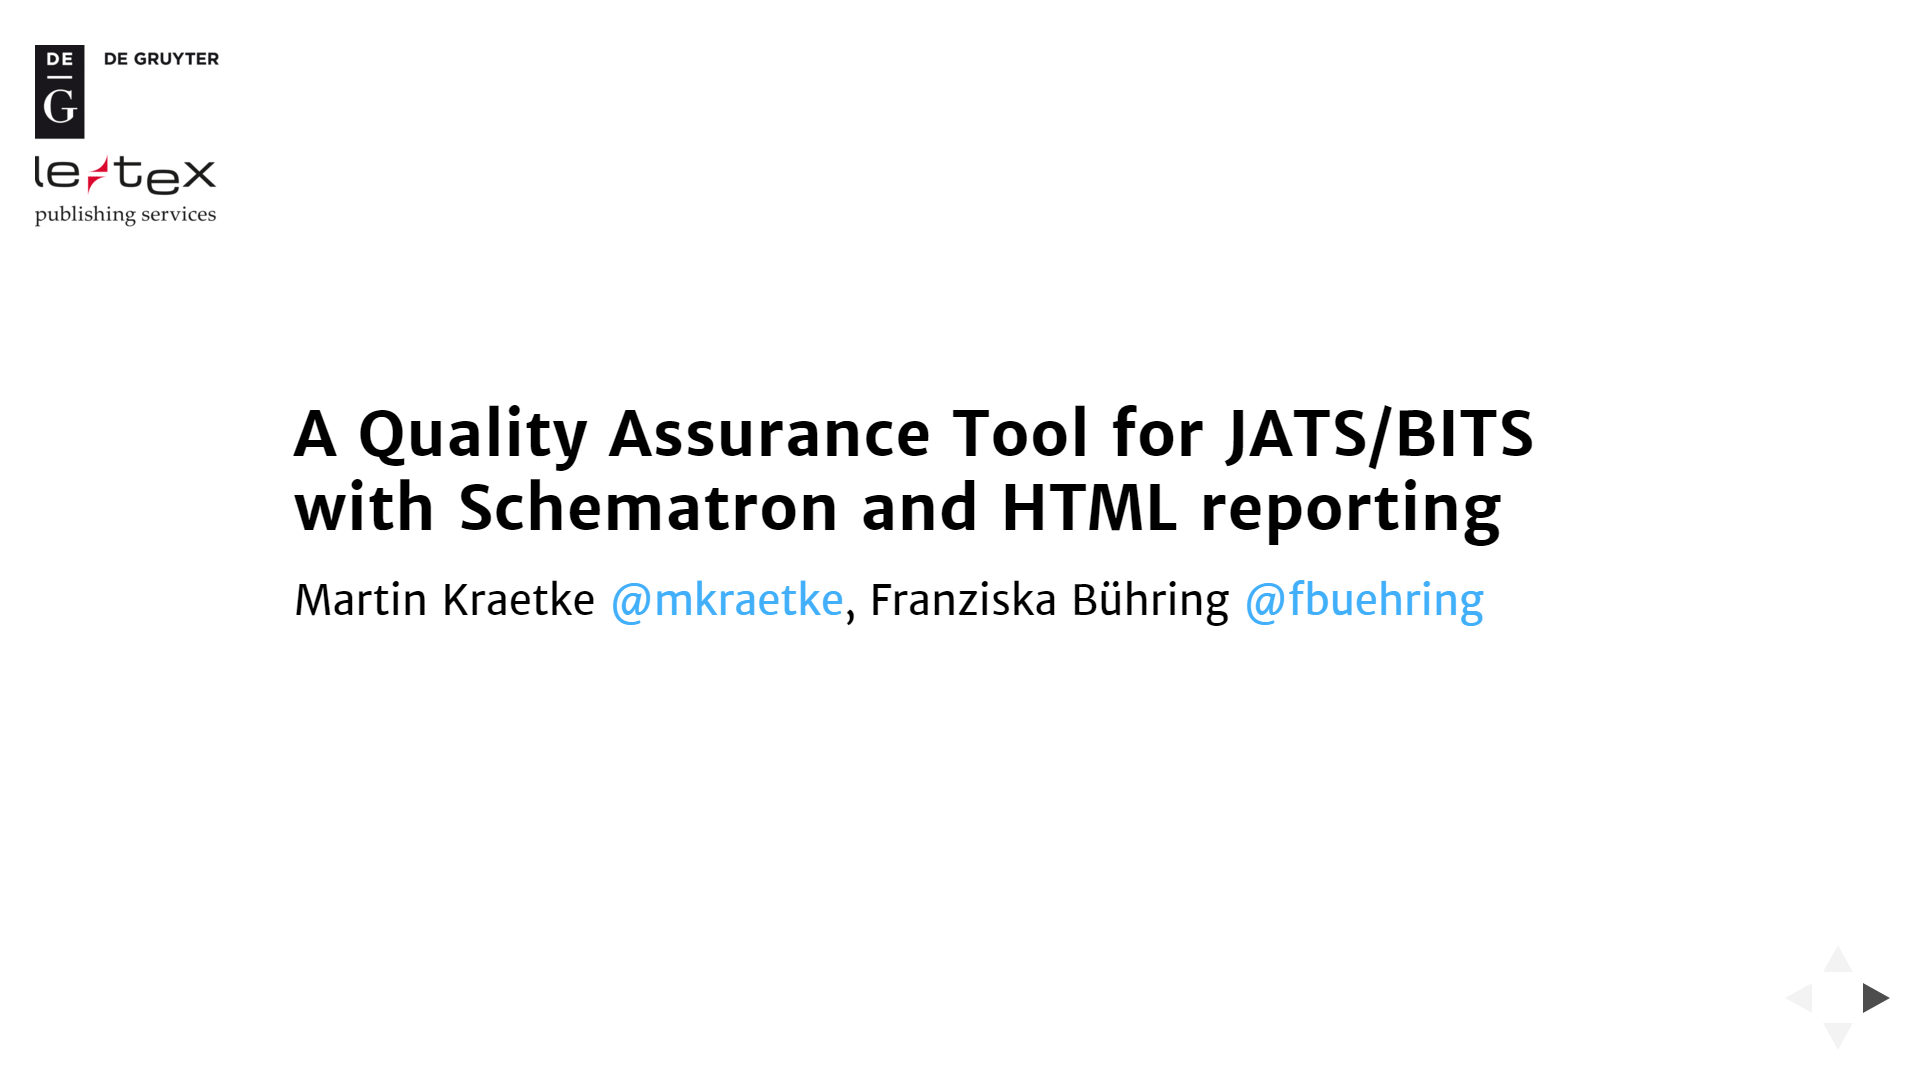 A Quality Assurance Tool for JATS/BITS with Schematron and HTML reporting